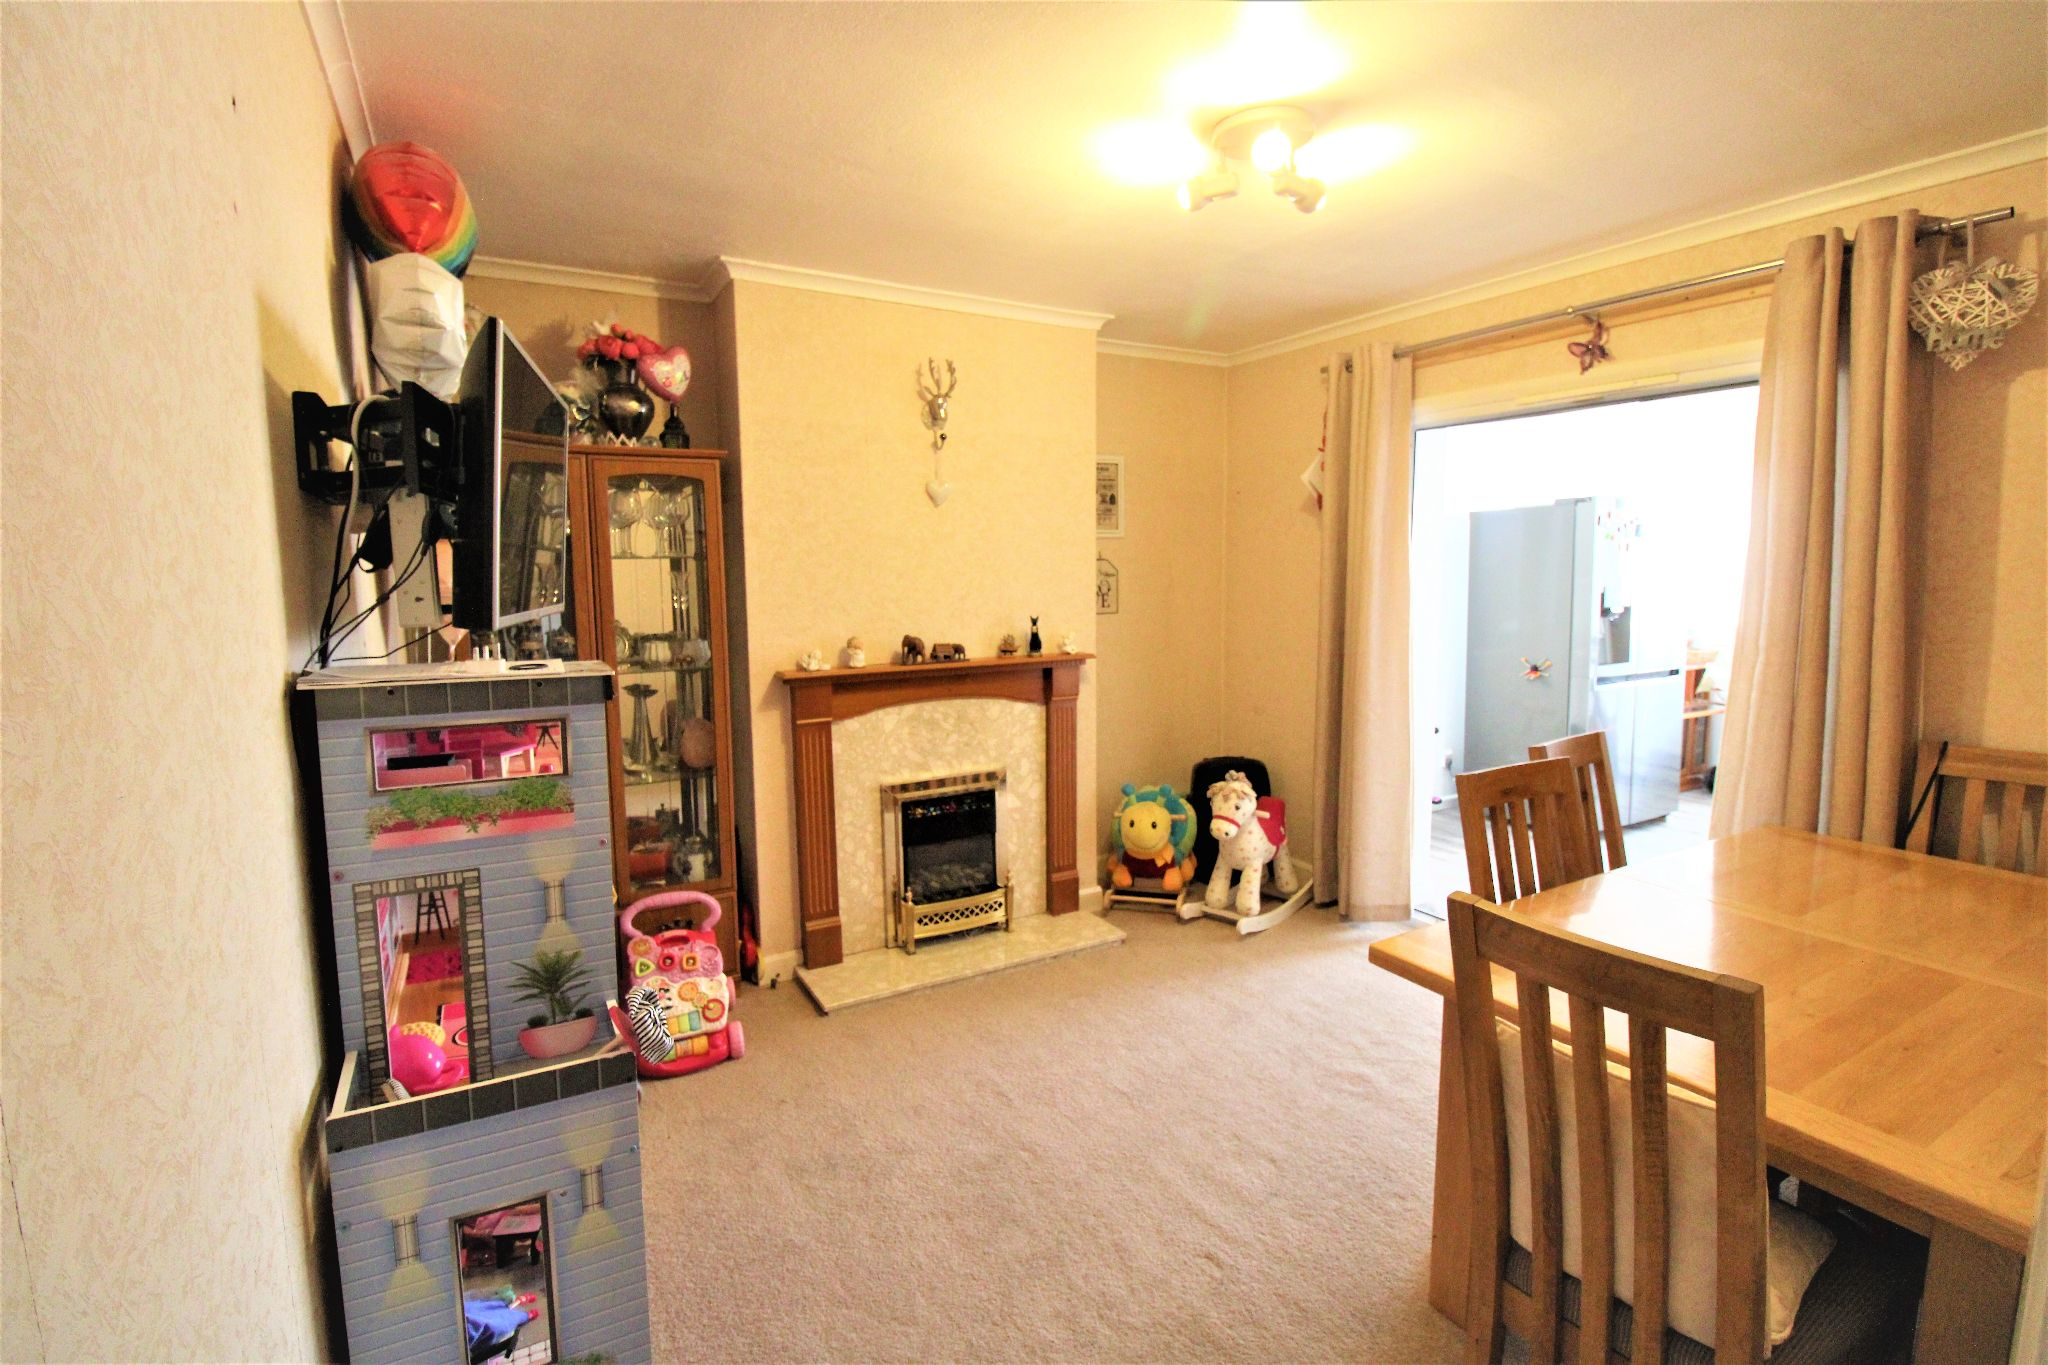 3 Bedroom Semi-detached House For Sale - Reception 2 /Dining Room